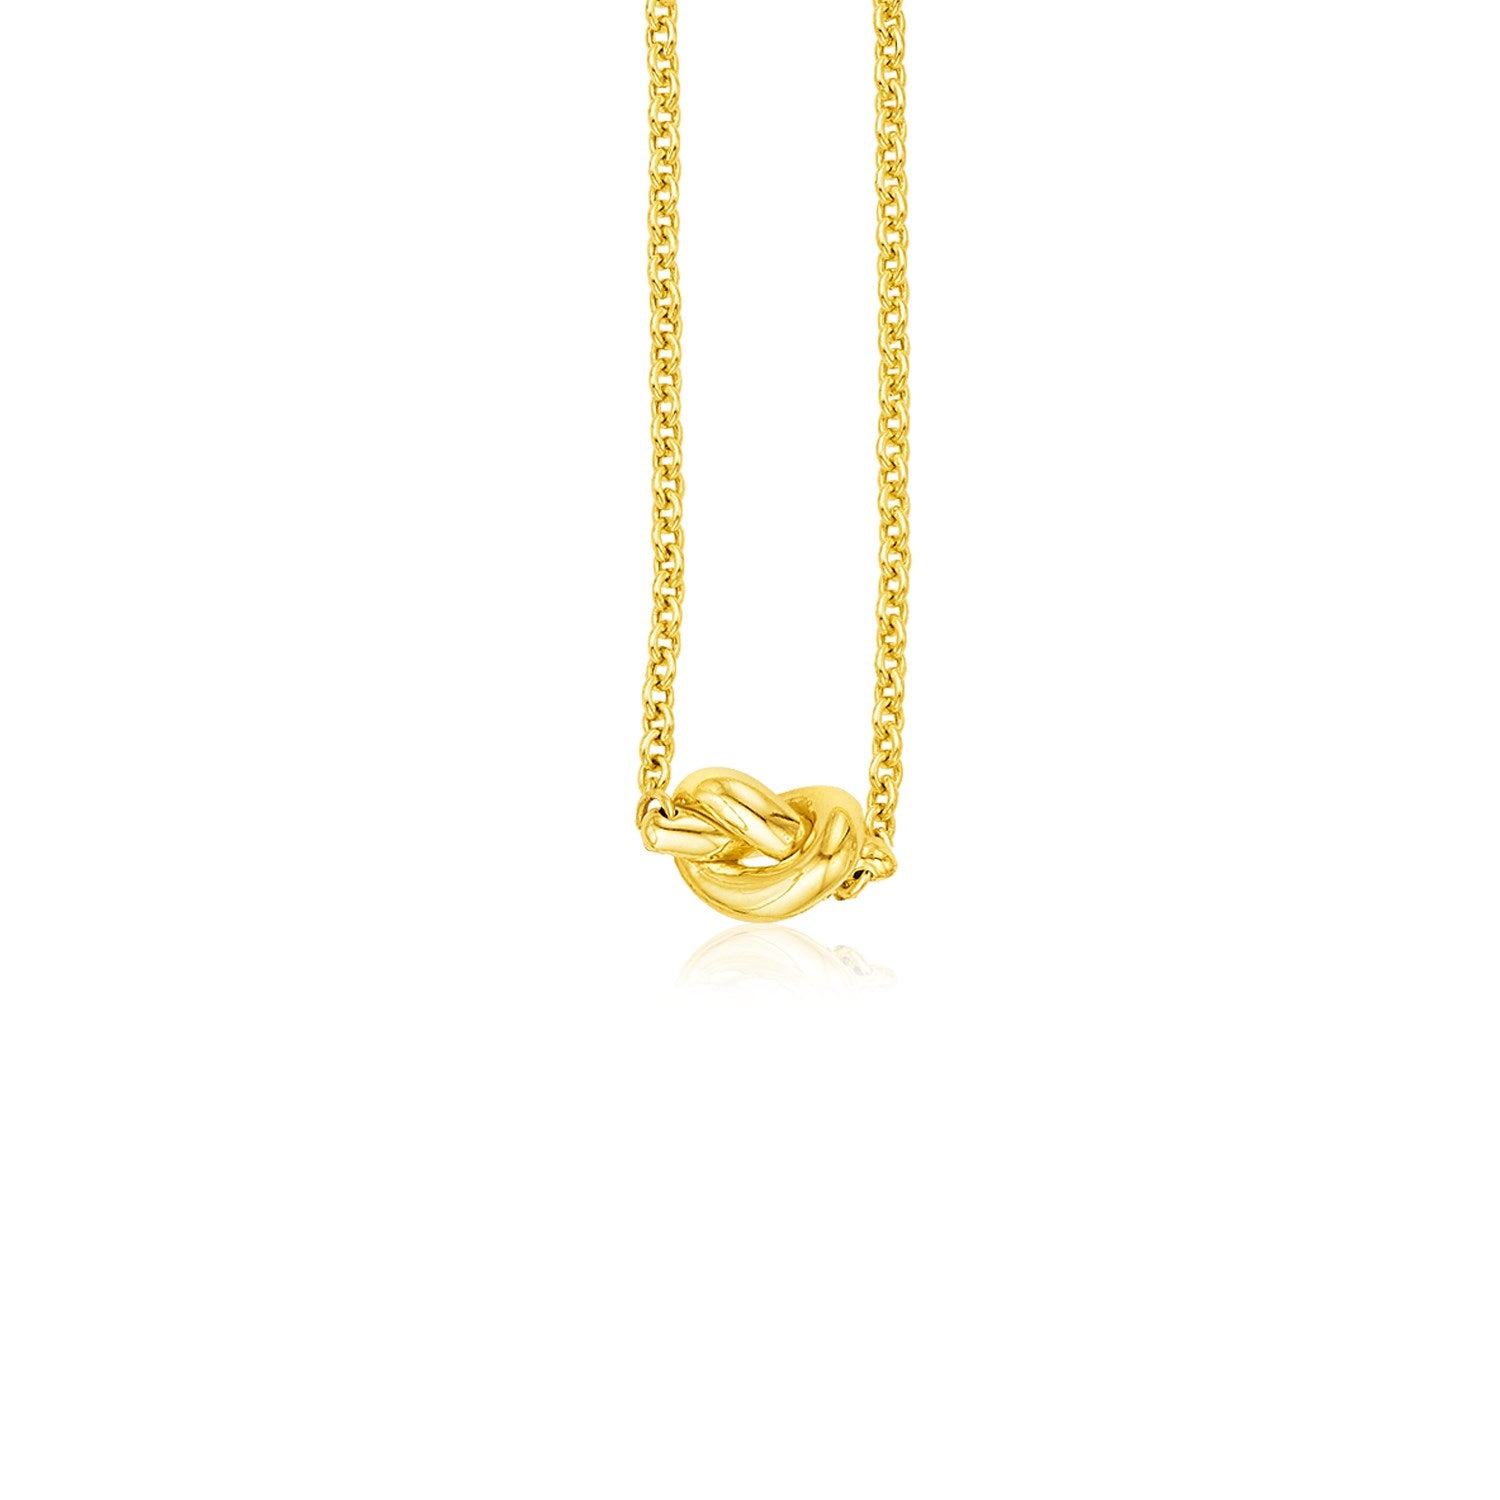 14k Yellow Gold Chain Necklace with Polished Knot